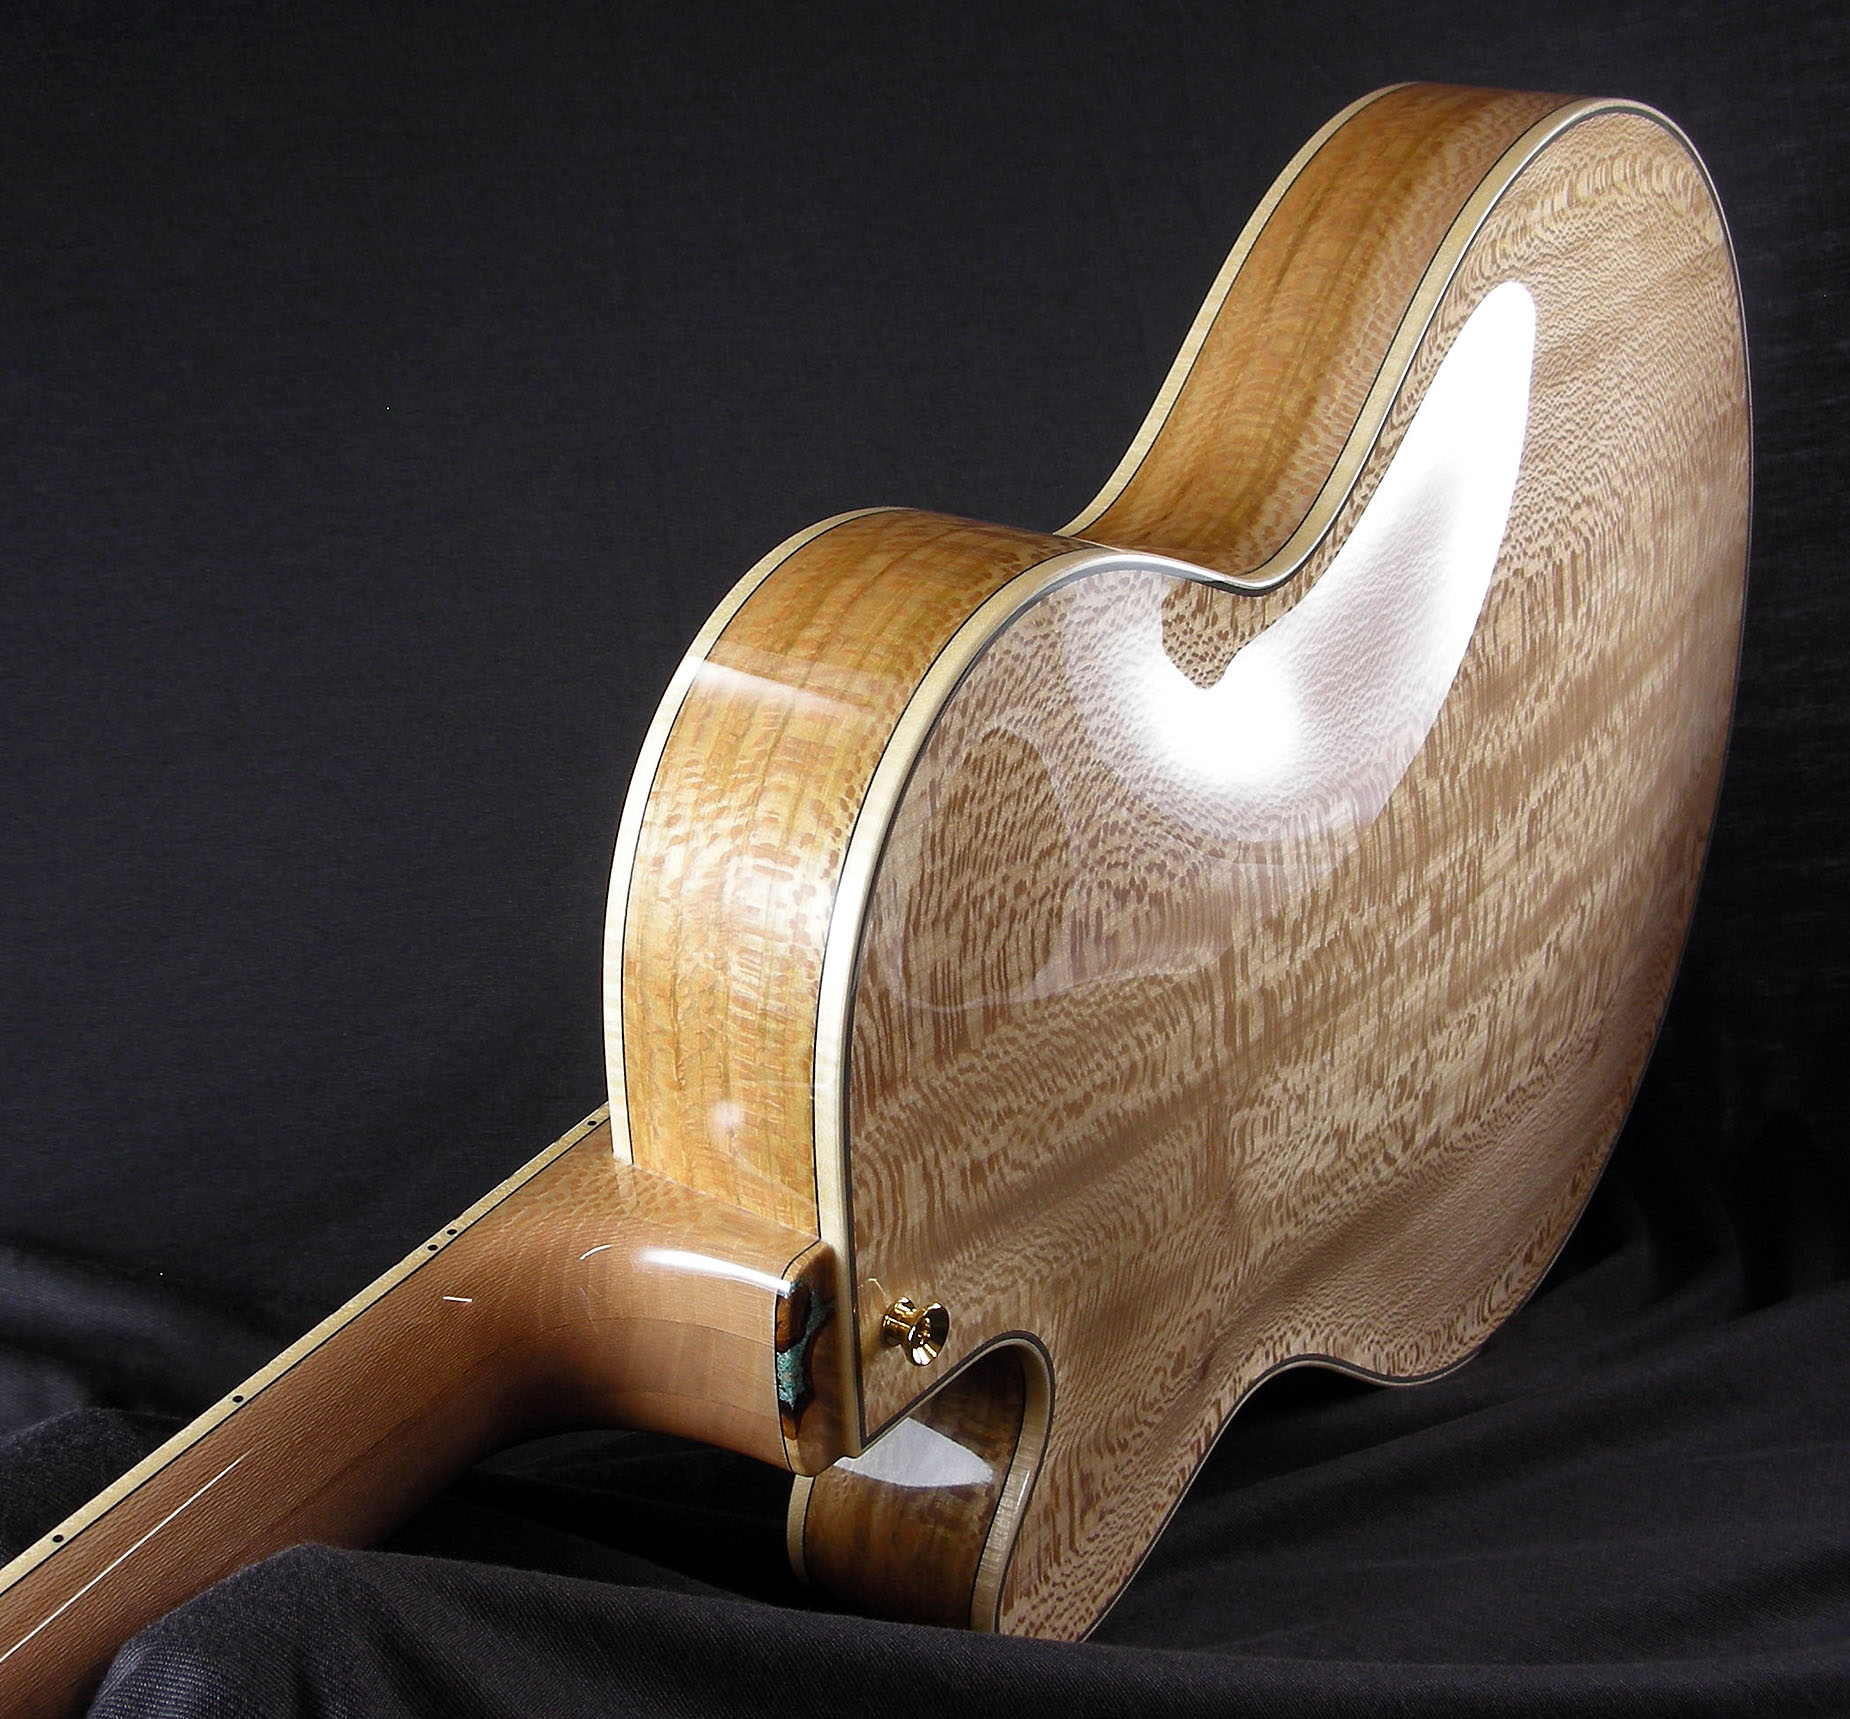 Benedetto-custom-16-B-Sycamore-S2144-sideview